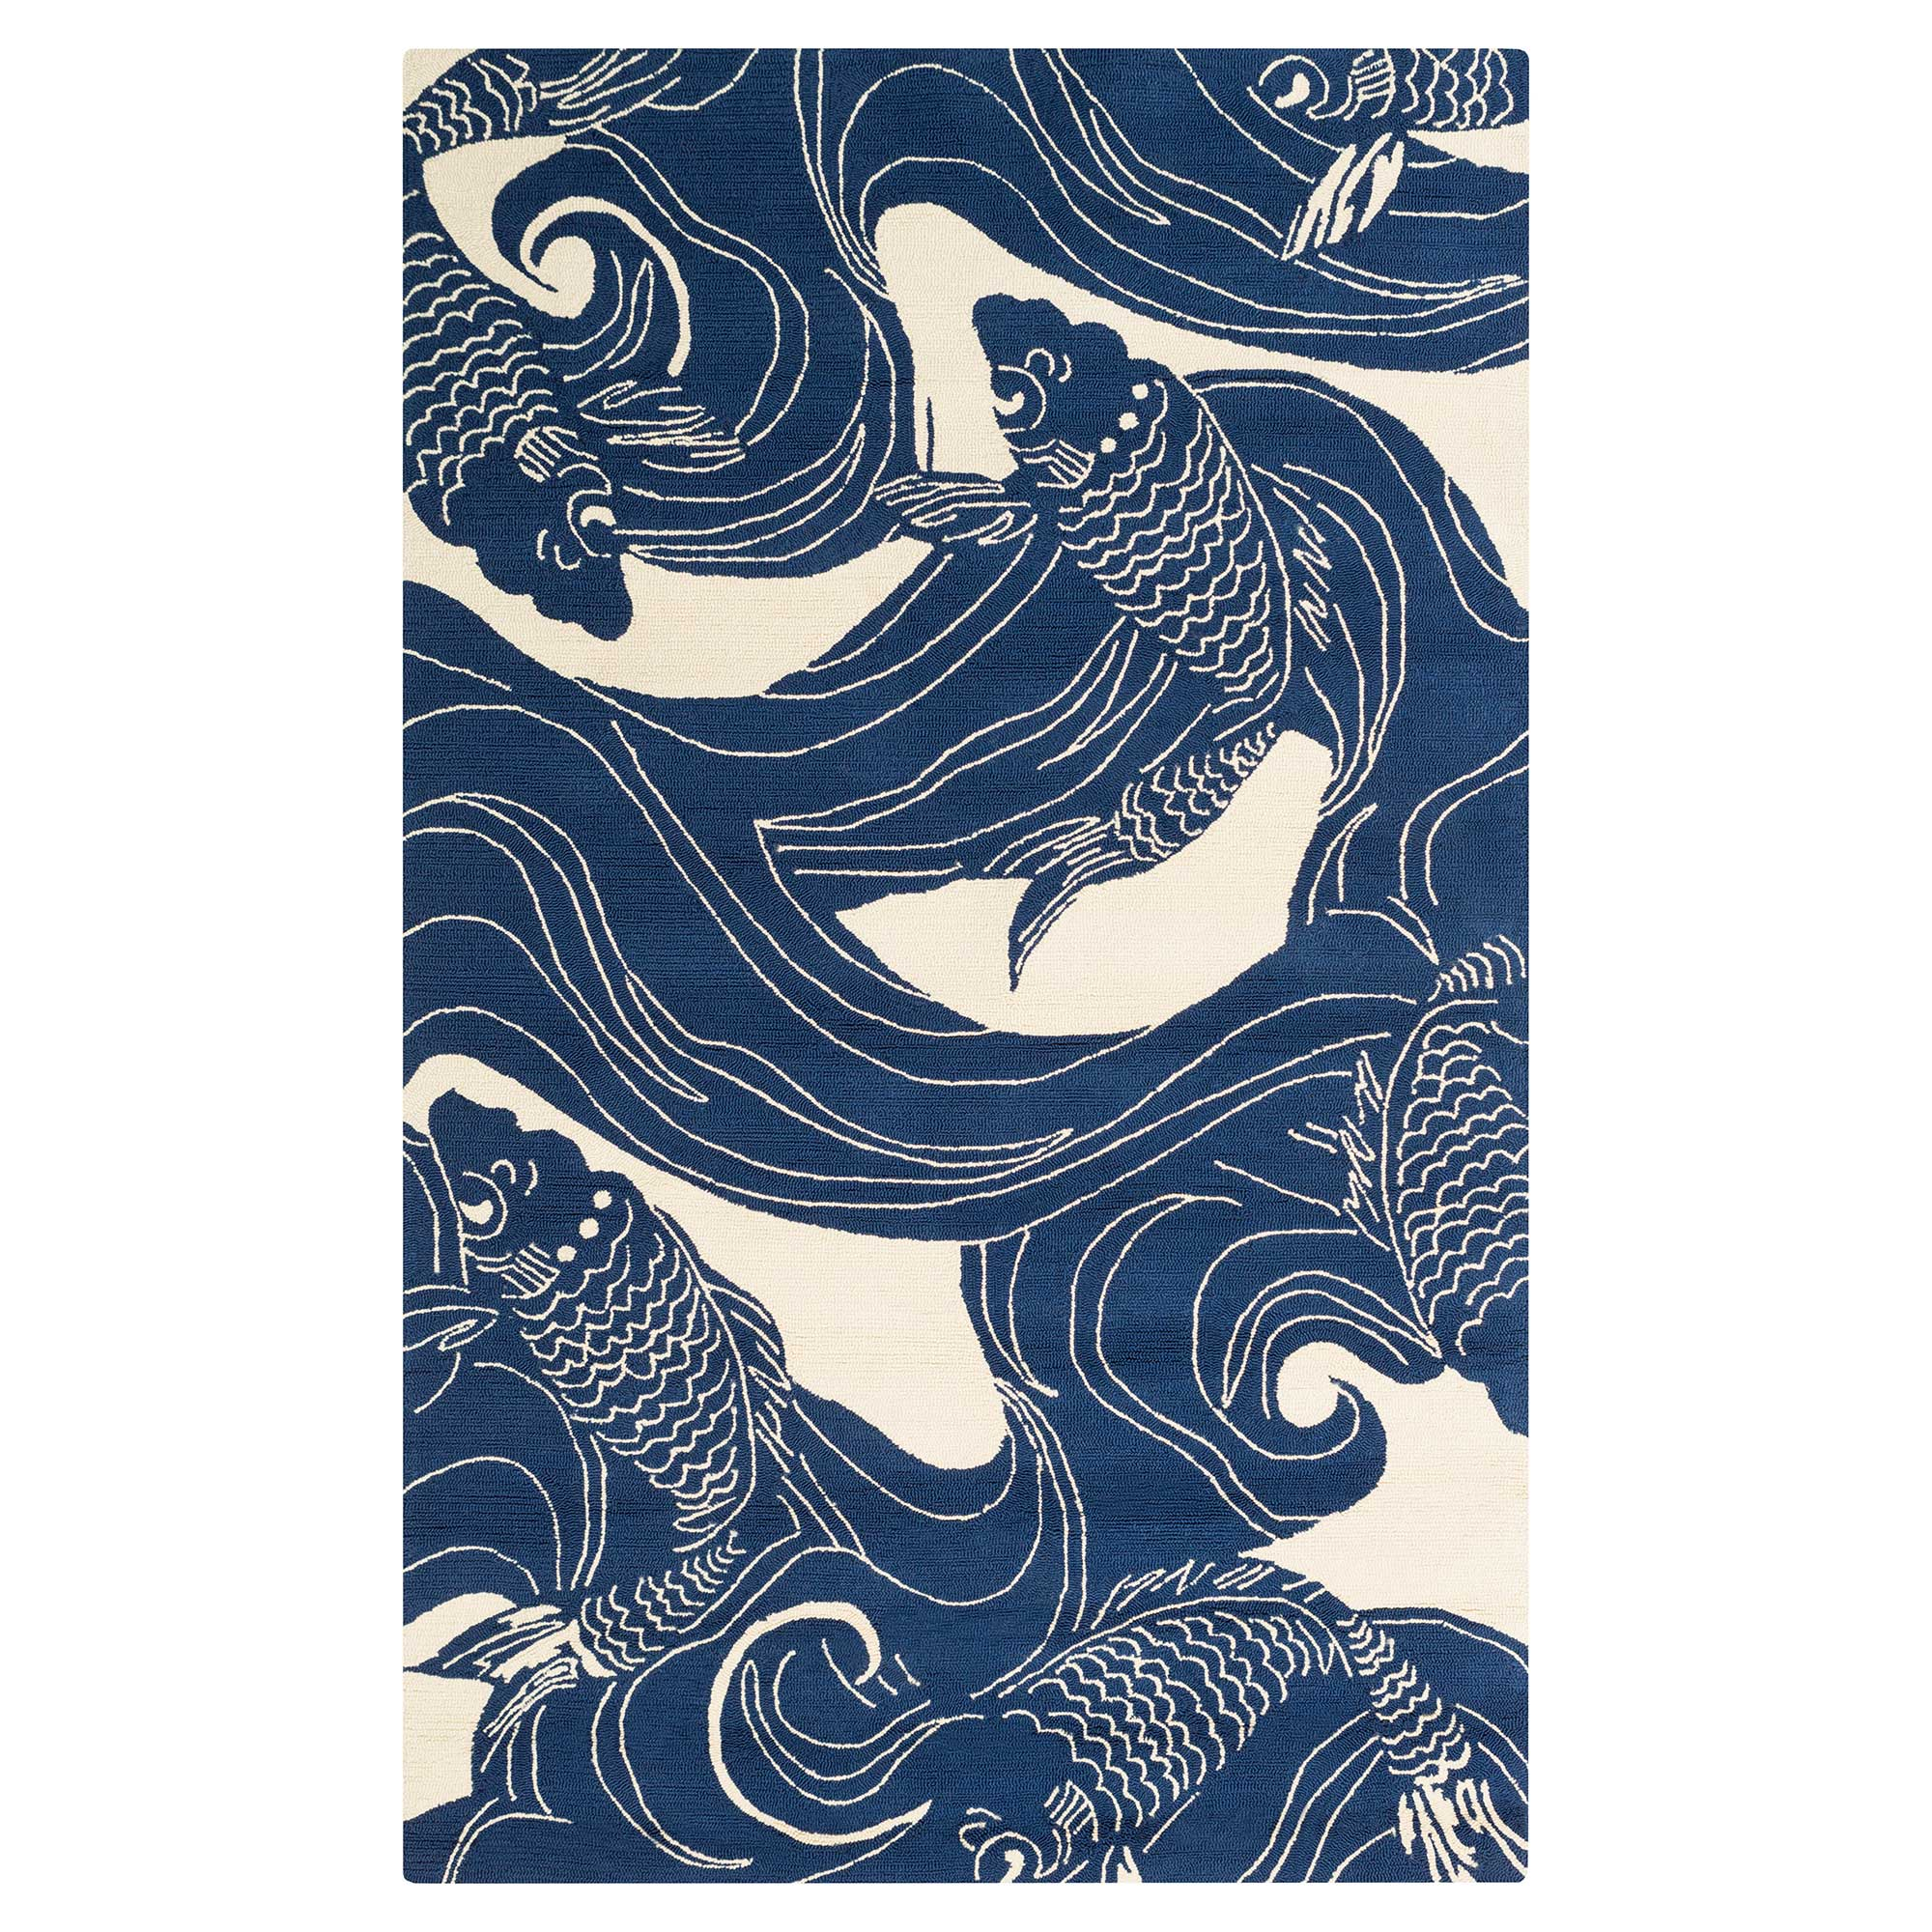 Kana Global Coastal Blue Ocean Koi Outdoor Rug - 2'x3'